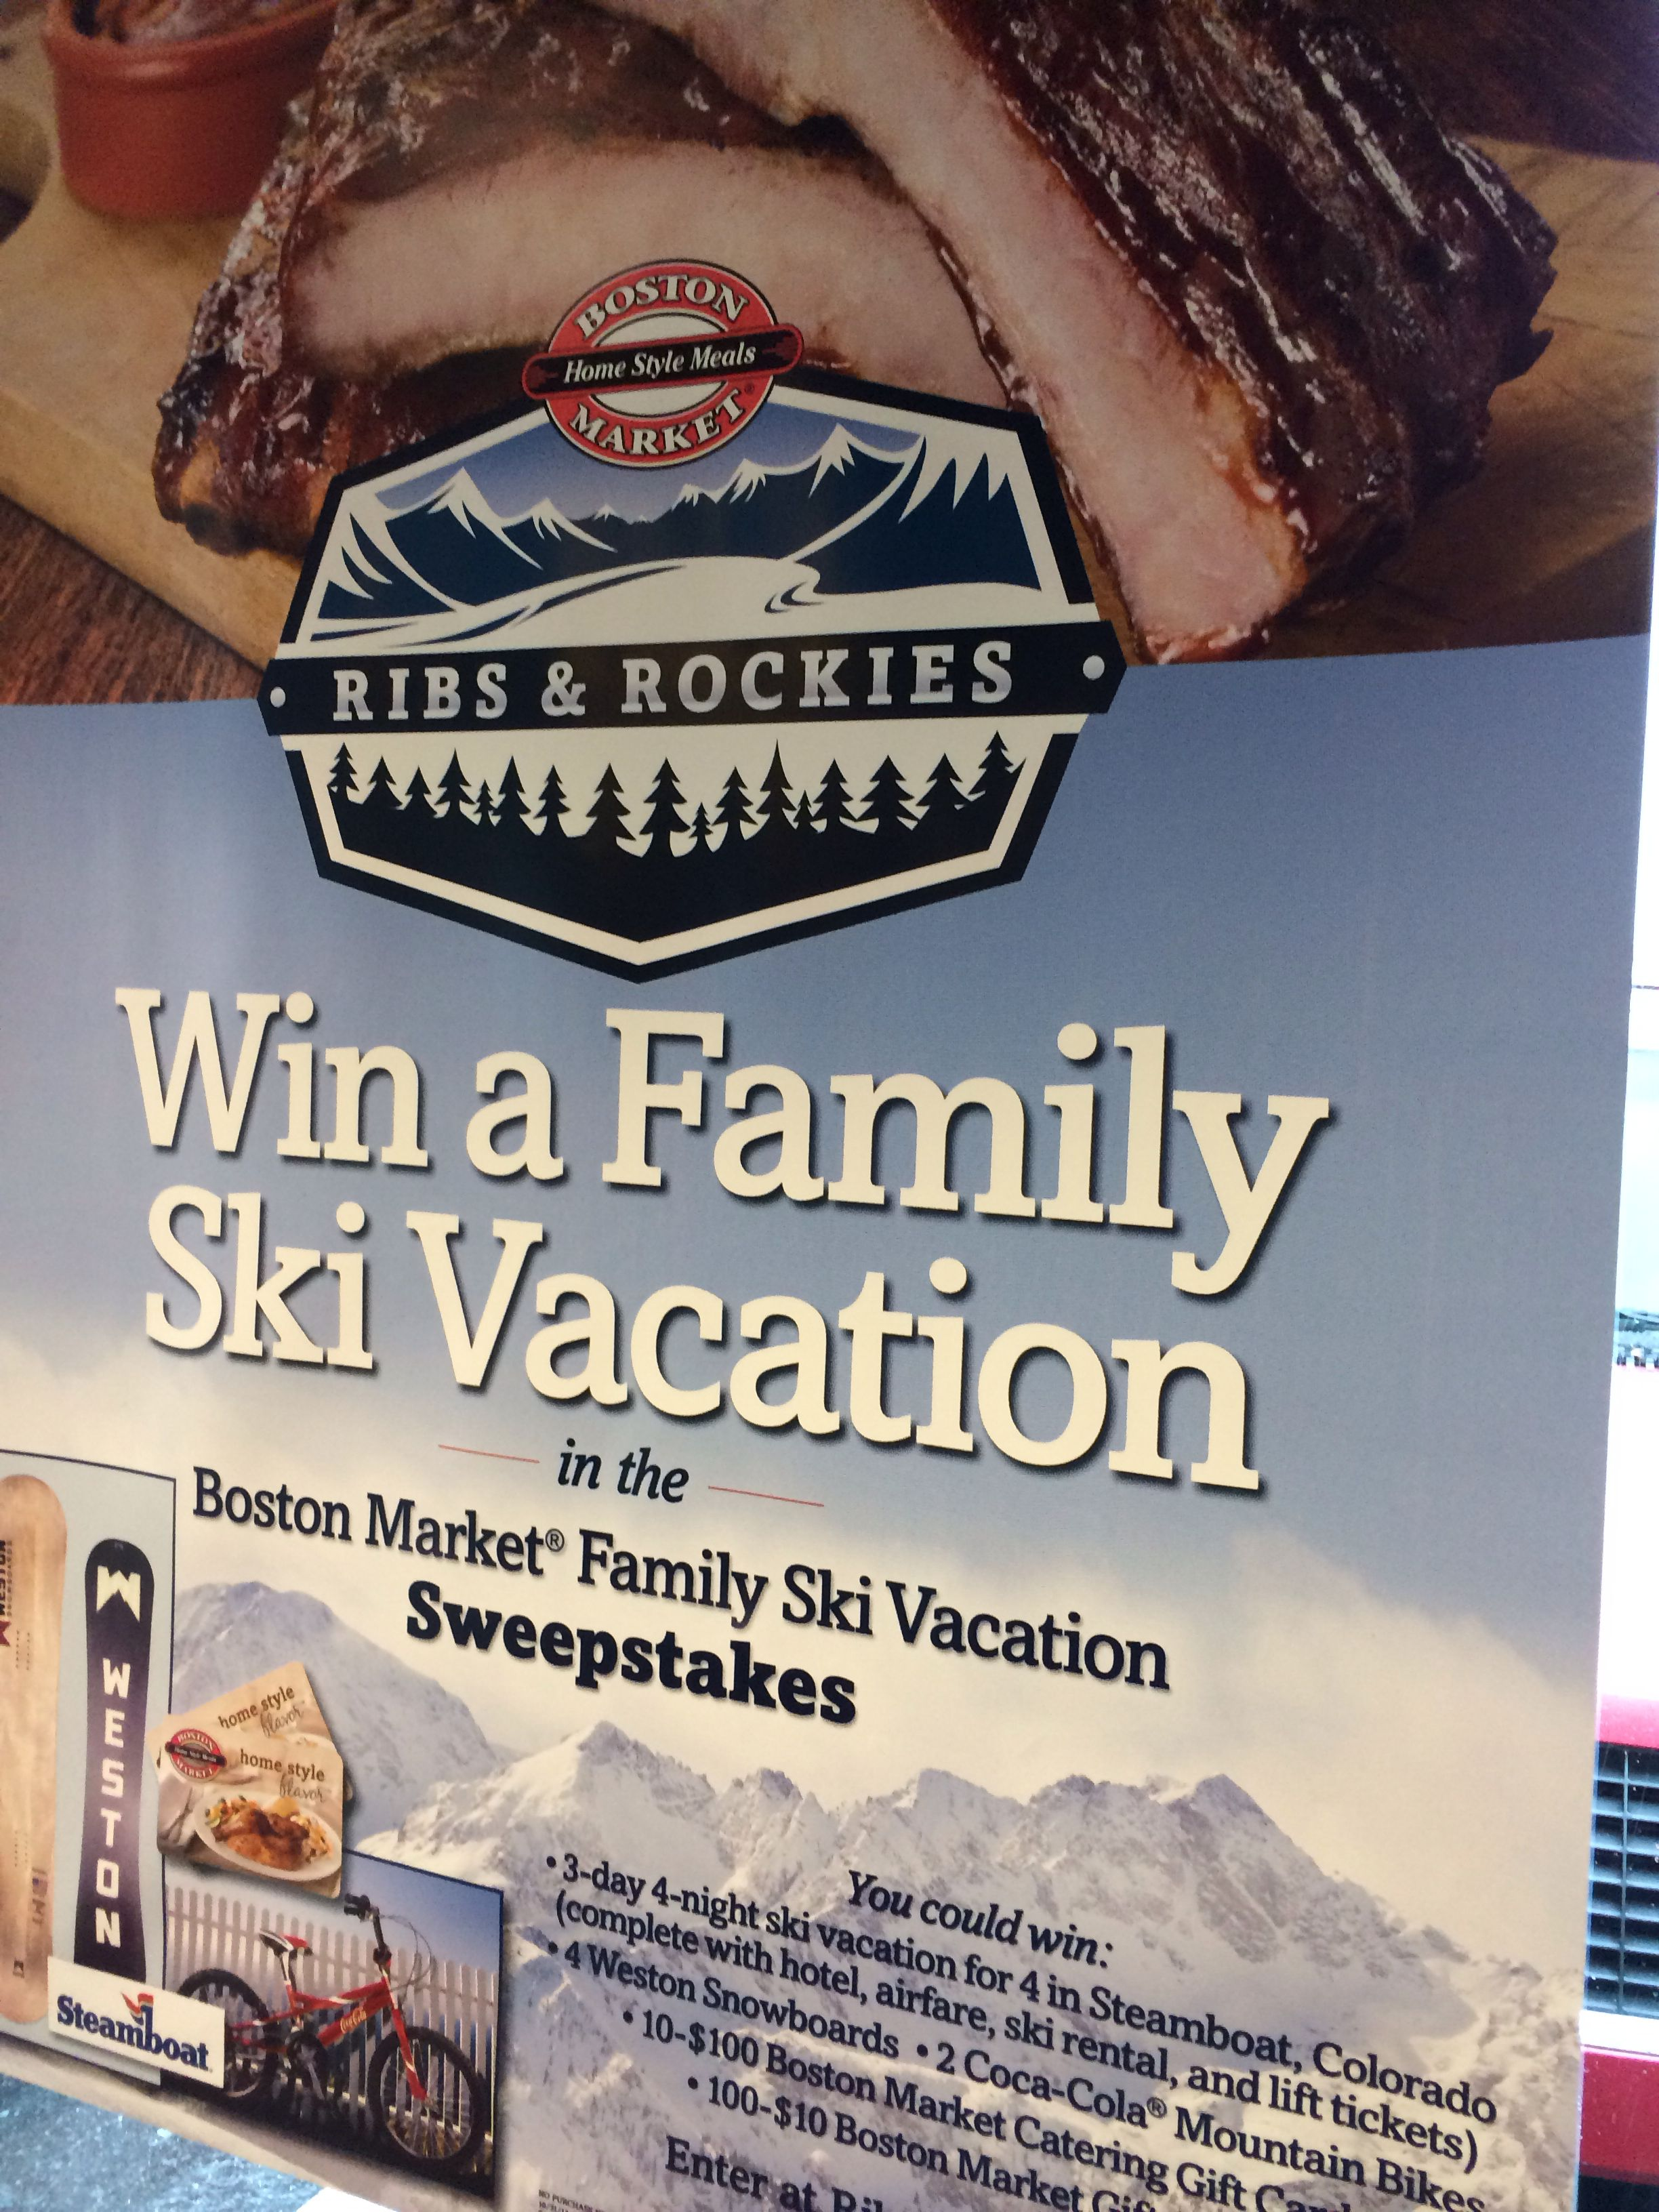 Boston Market Vacation sweepstakes, Ski vacation, Boston